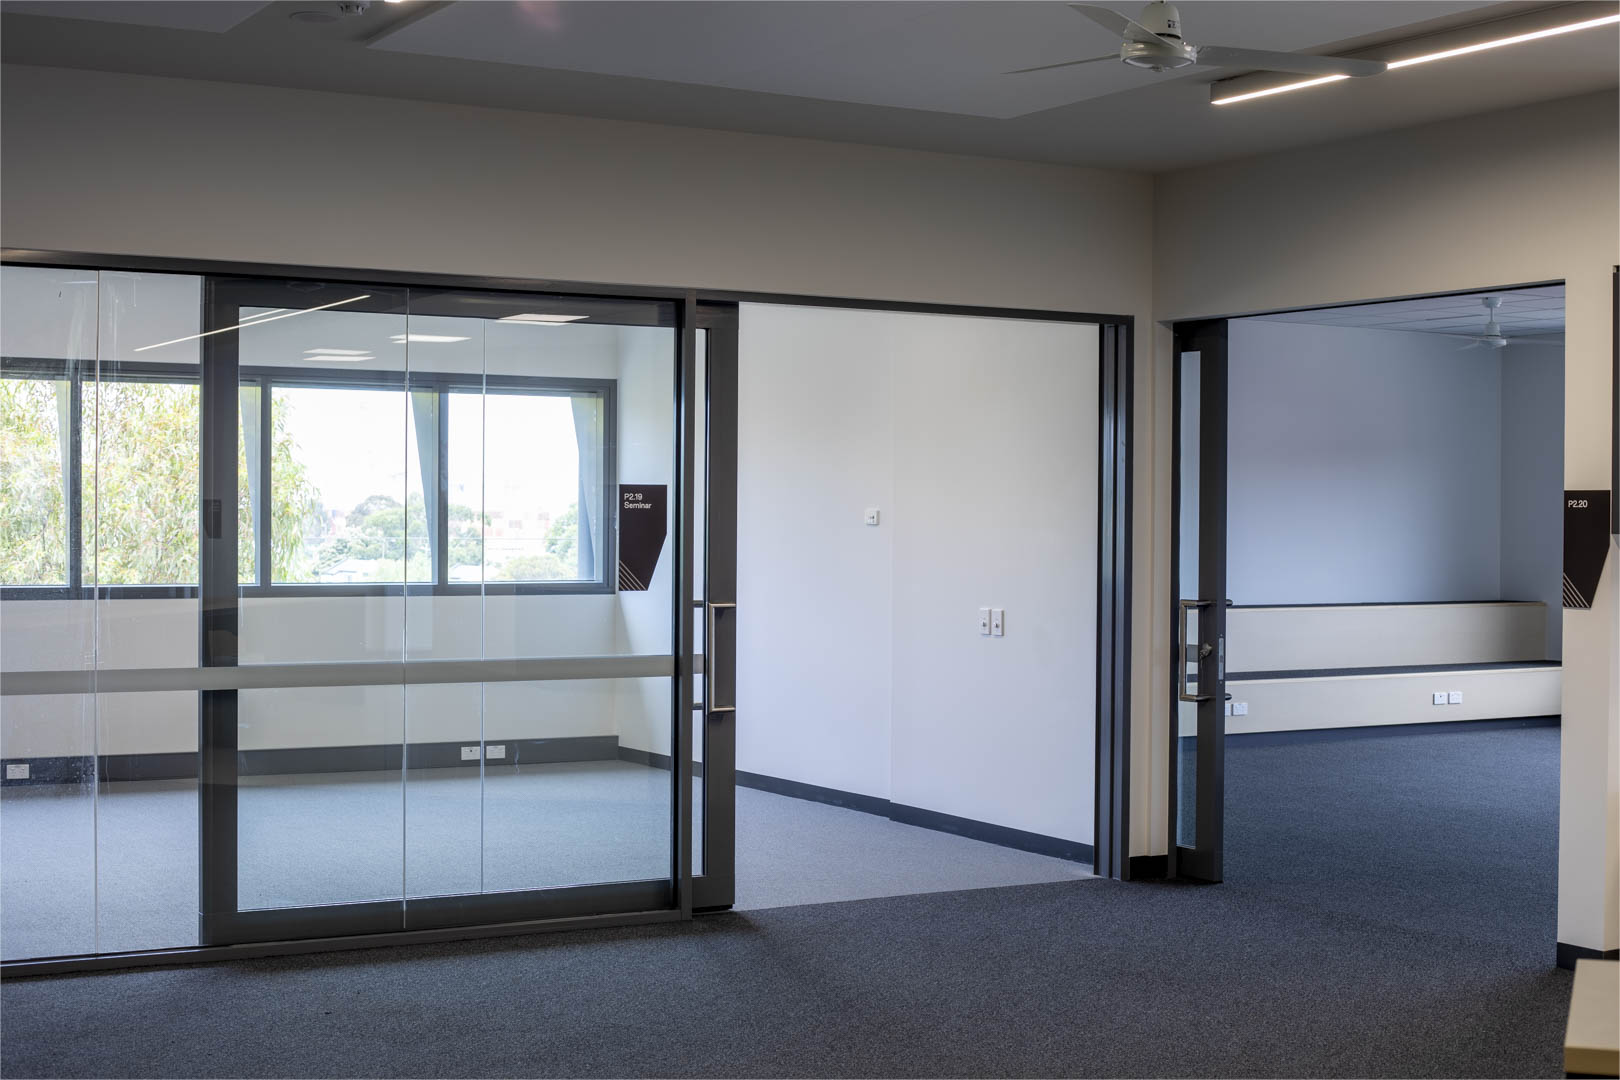 image of school's acoustic glazed sliders with the doors opened